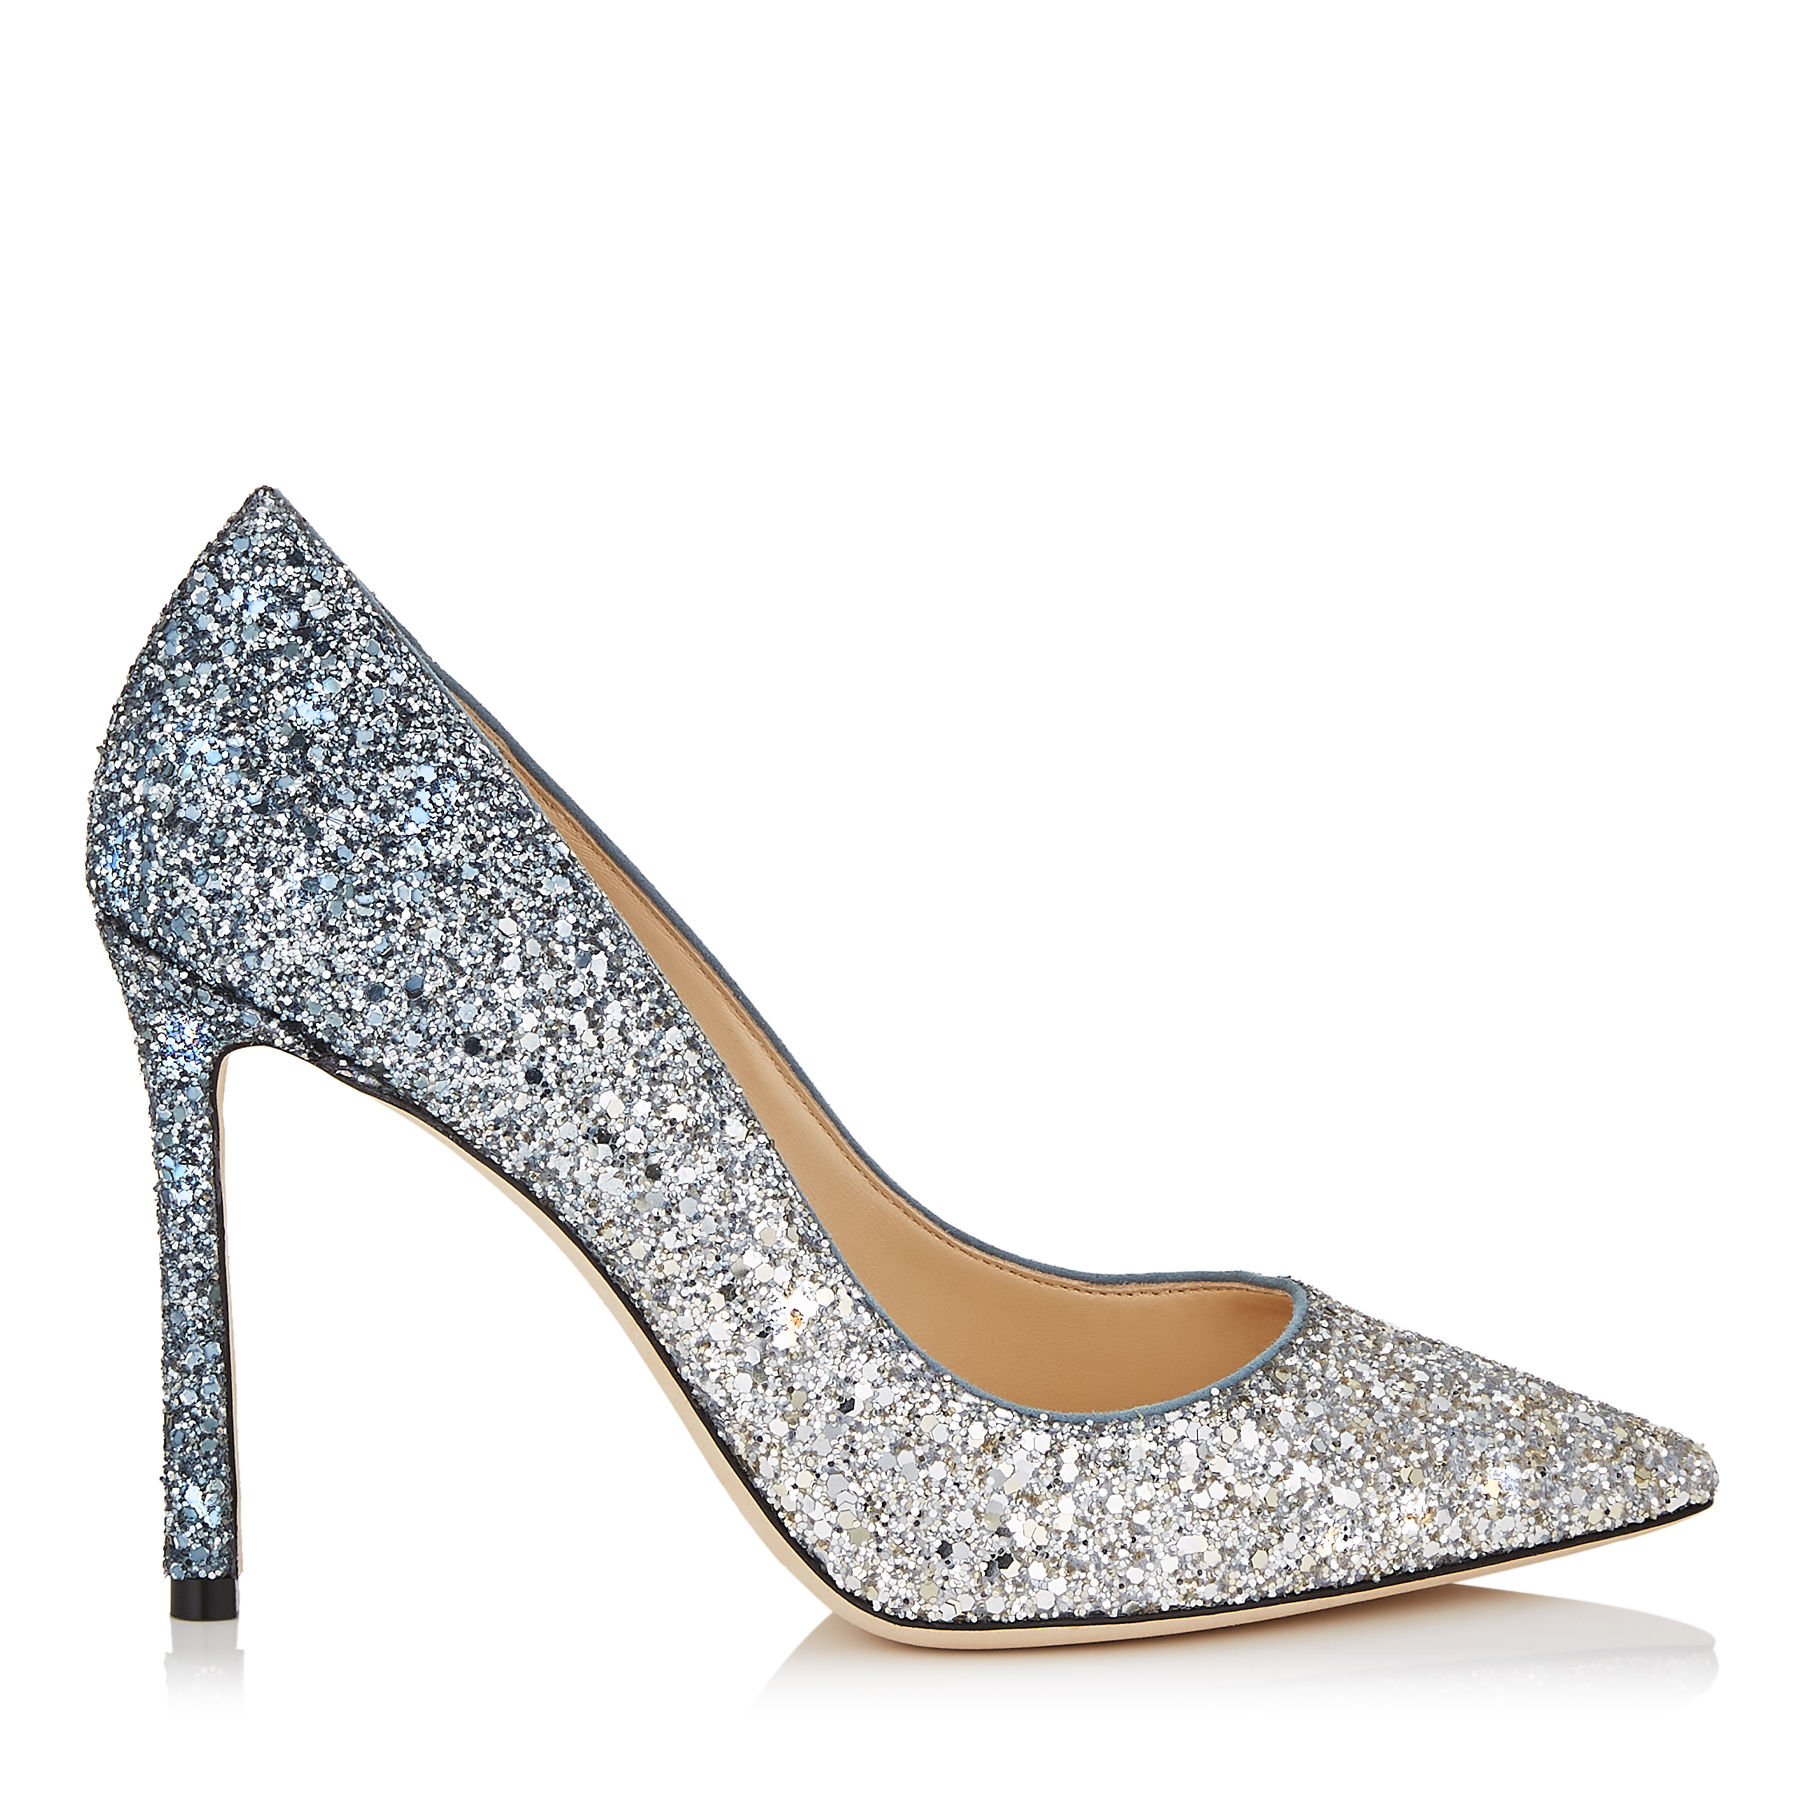 Jimmy Choo Romy 100 Glitter Pumps-Kate Middleton